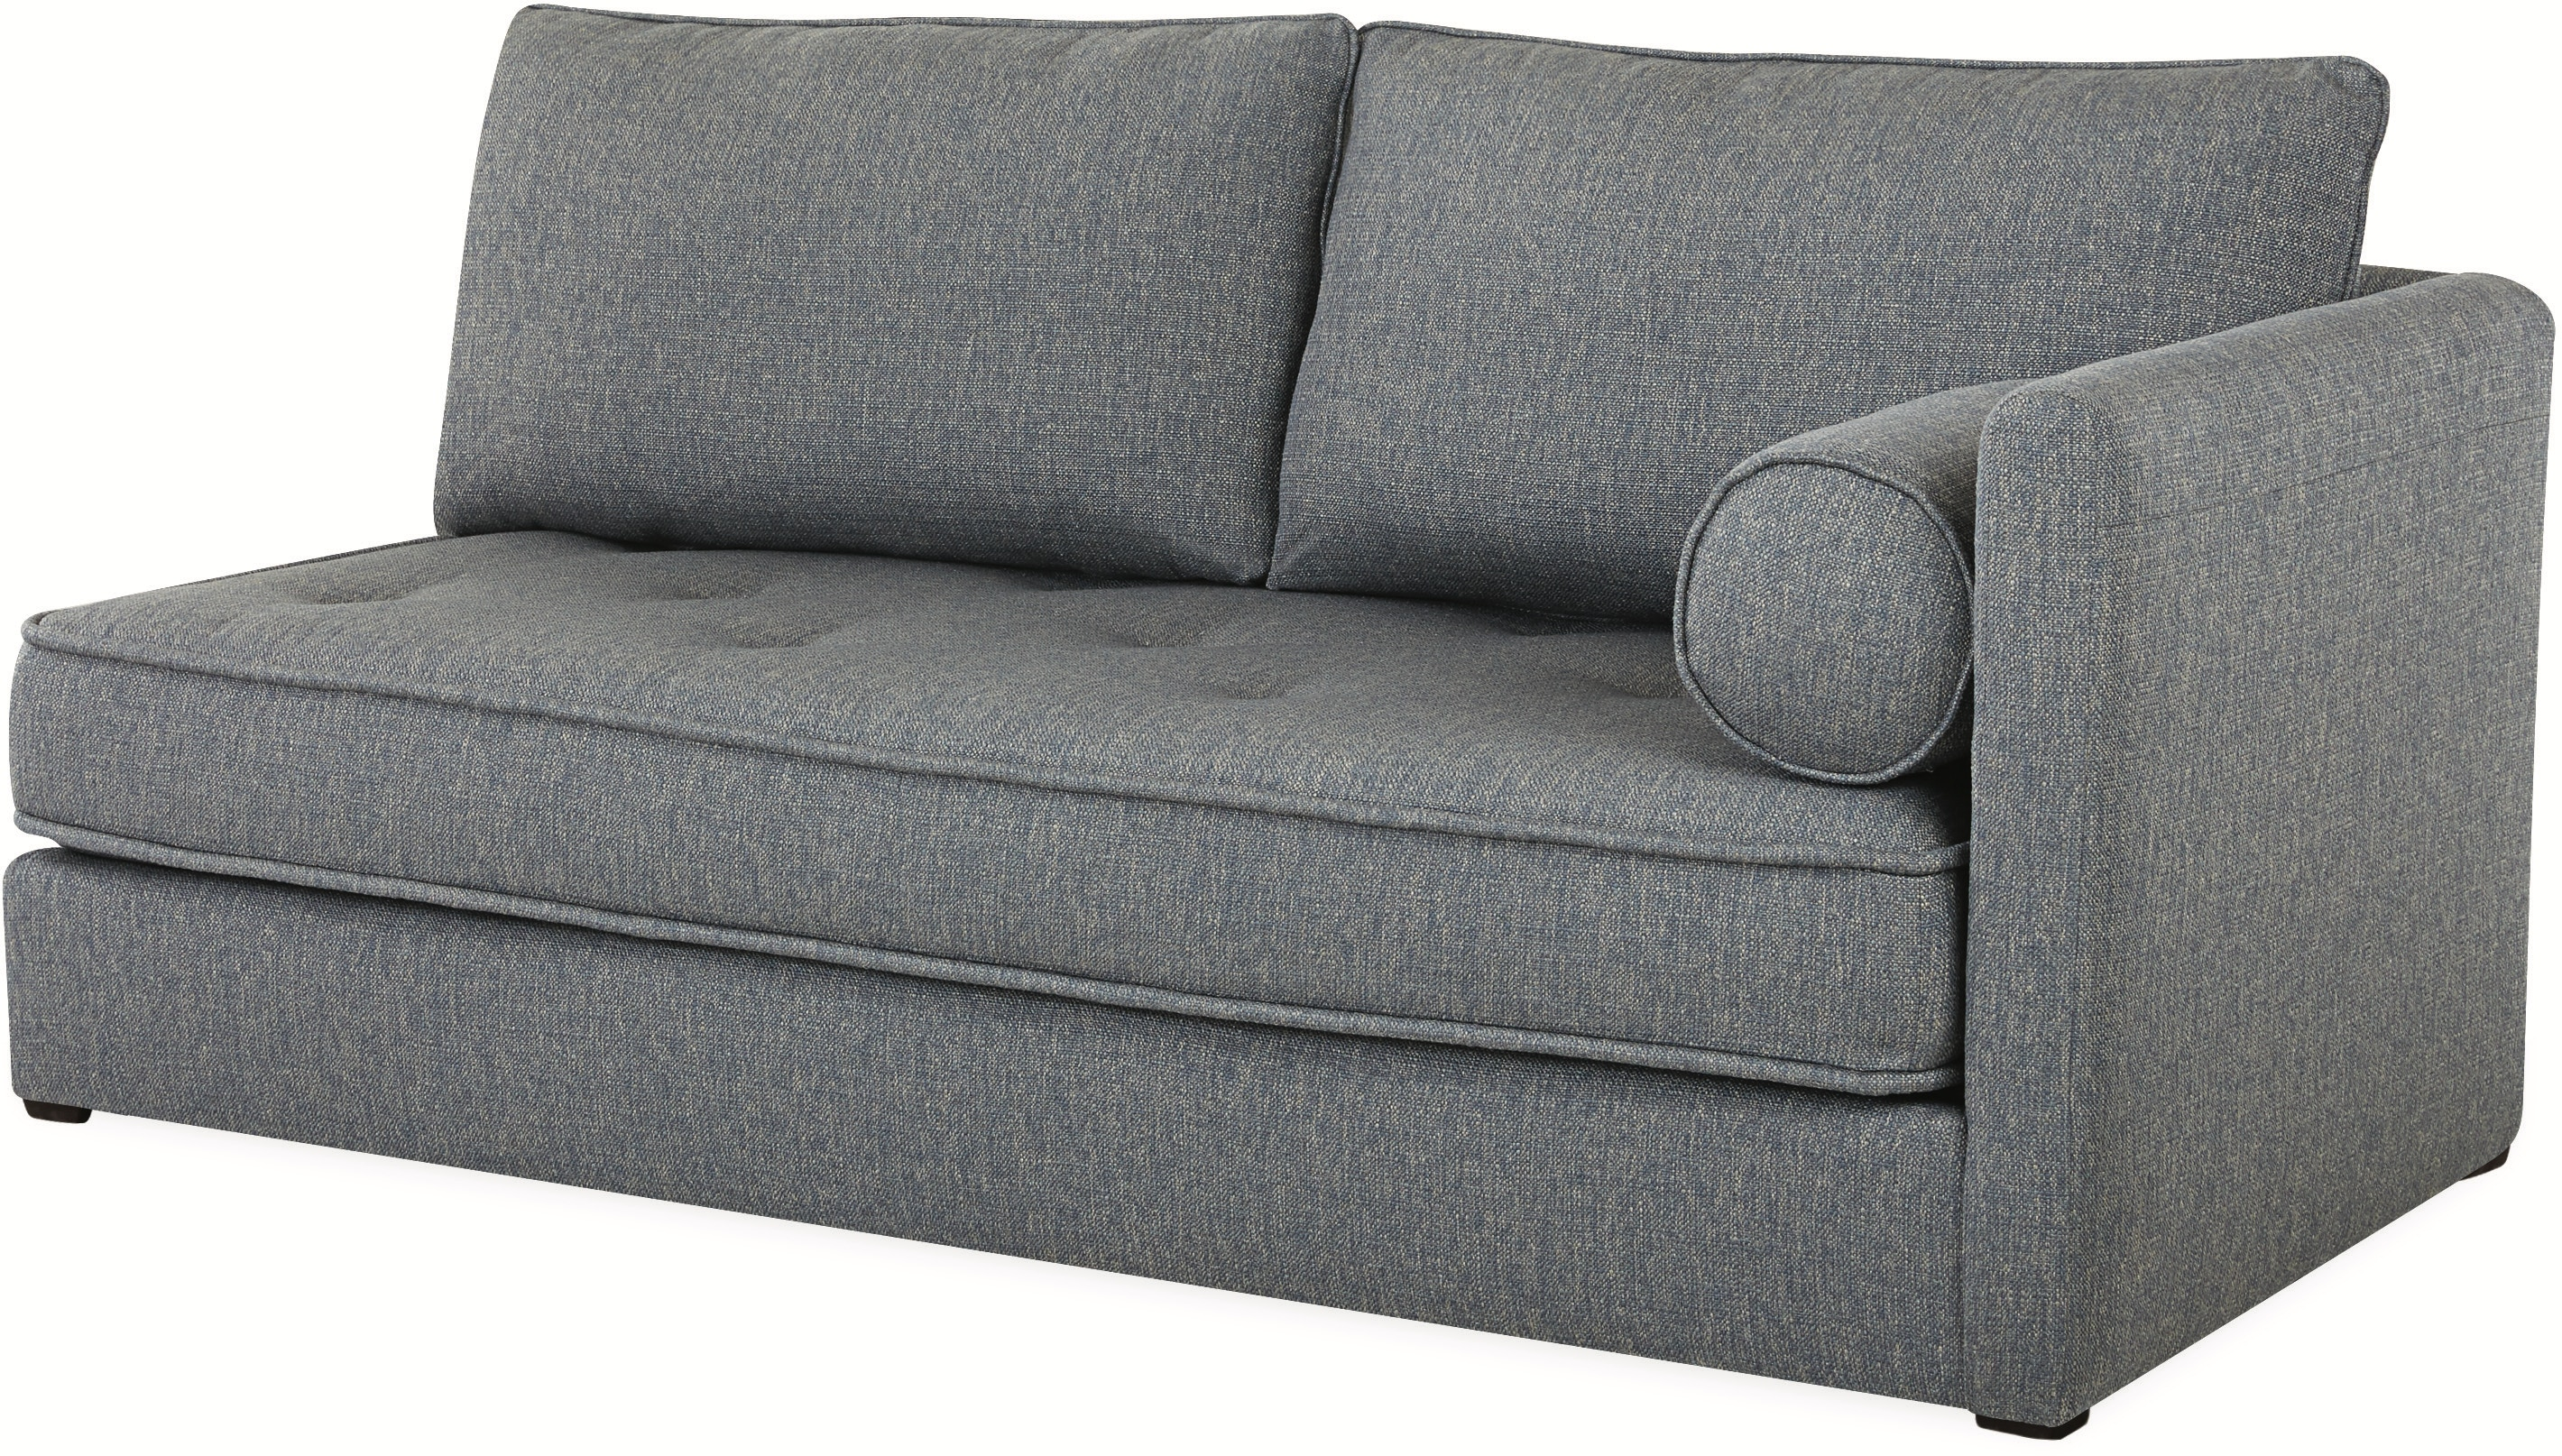 Lee Industries Living Room One Arm Sofa 5656 18rf Oasis Rug  ~ One Arm Sofa With Chaise